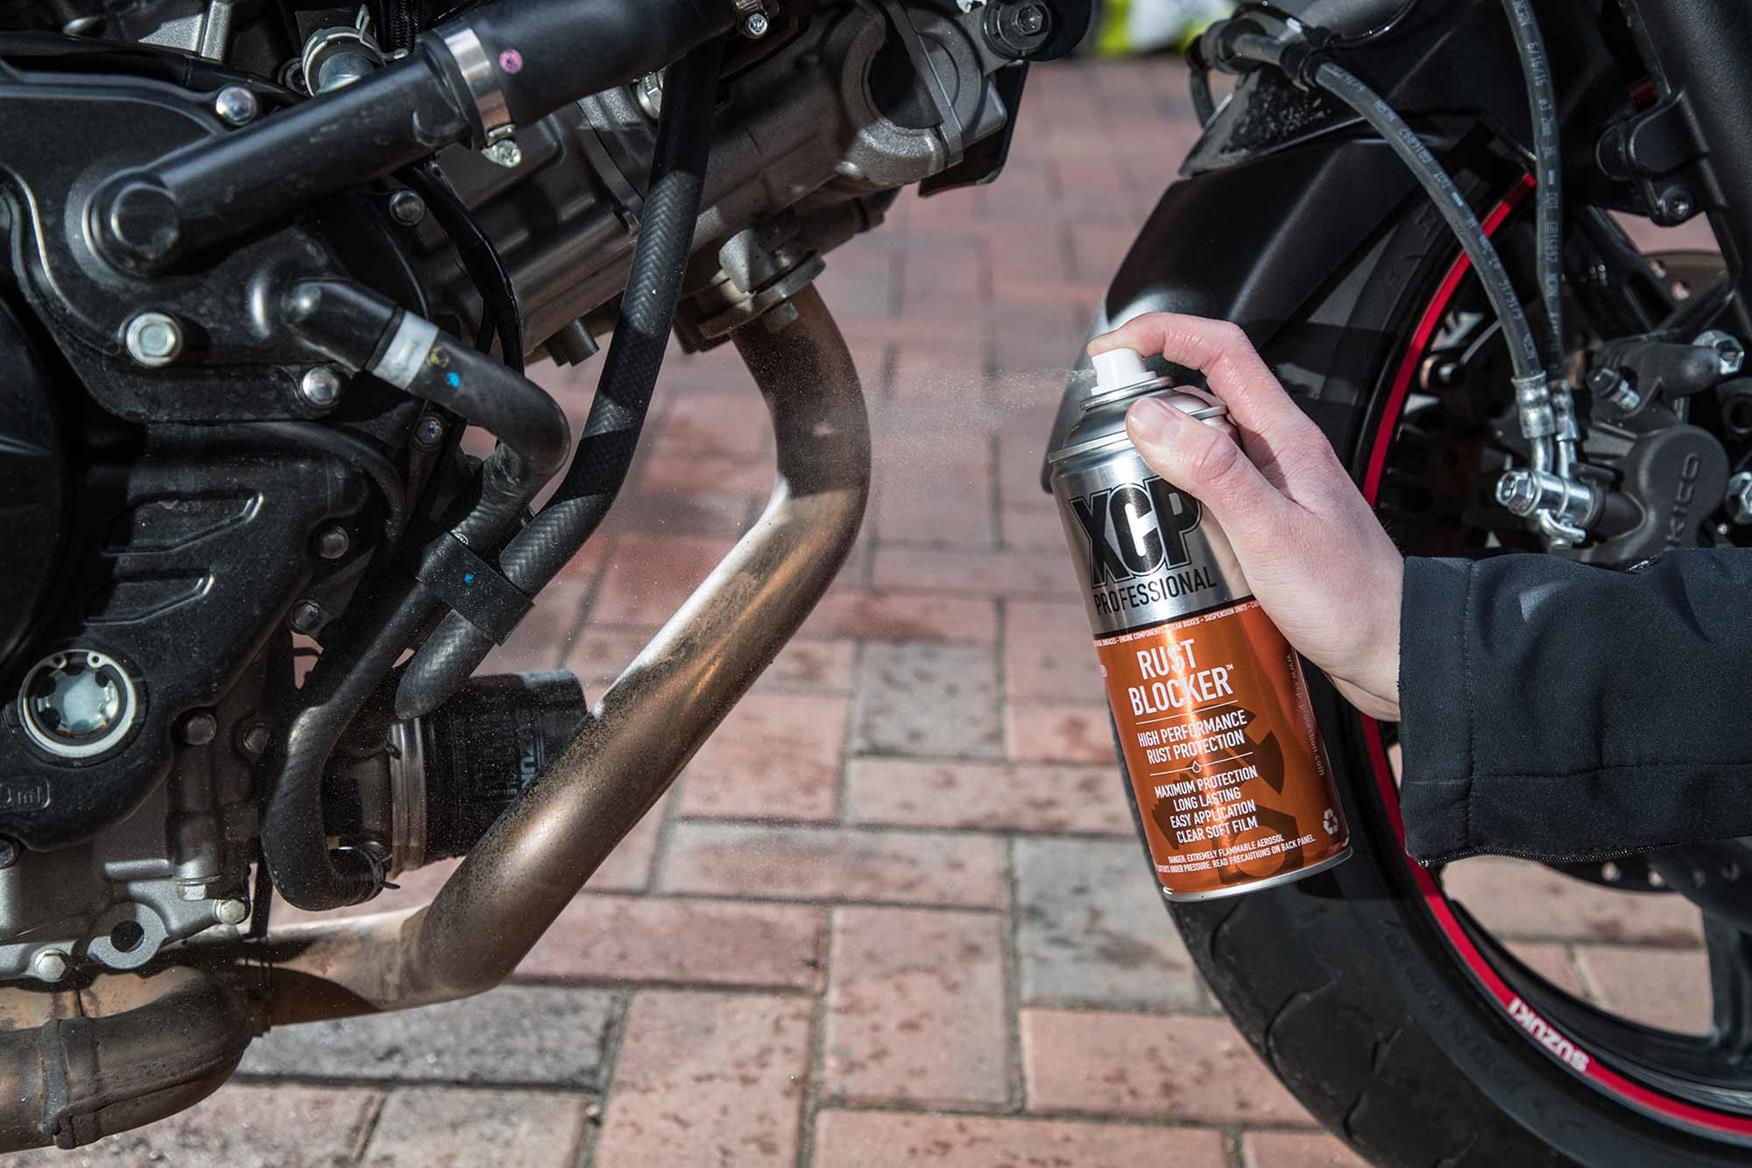 XCP is another anti-corrosion spray